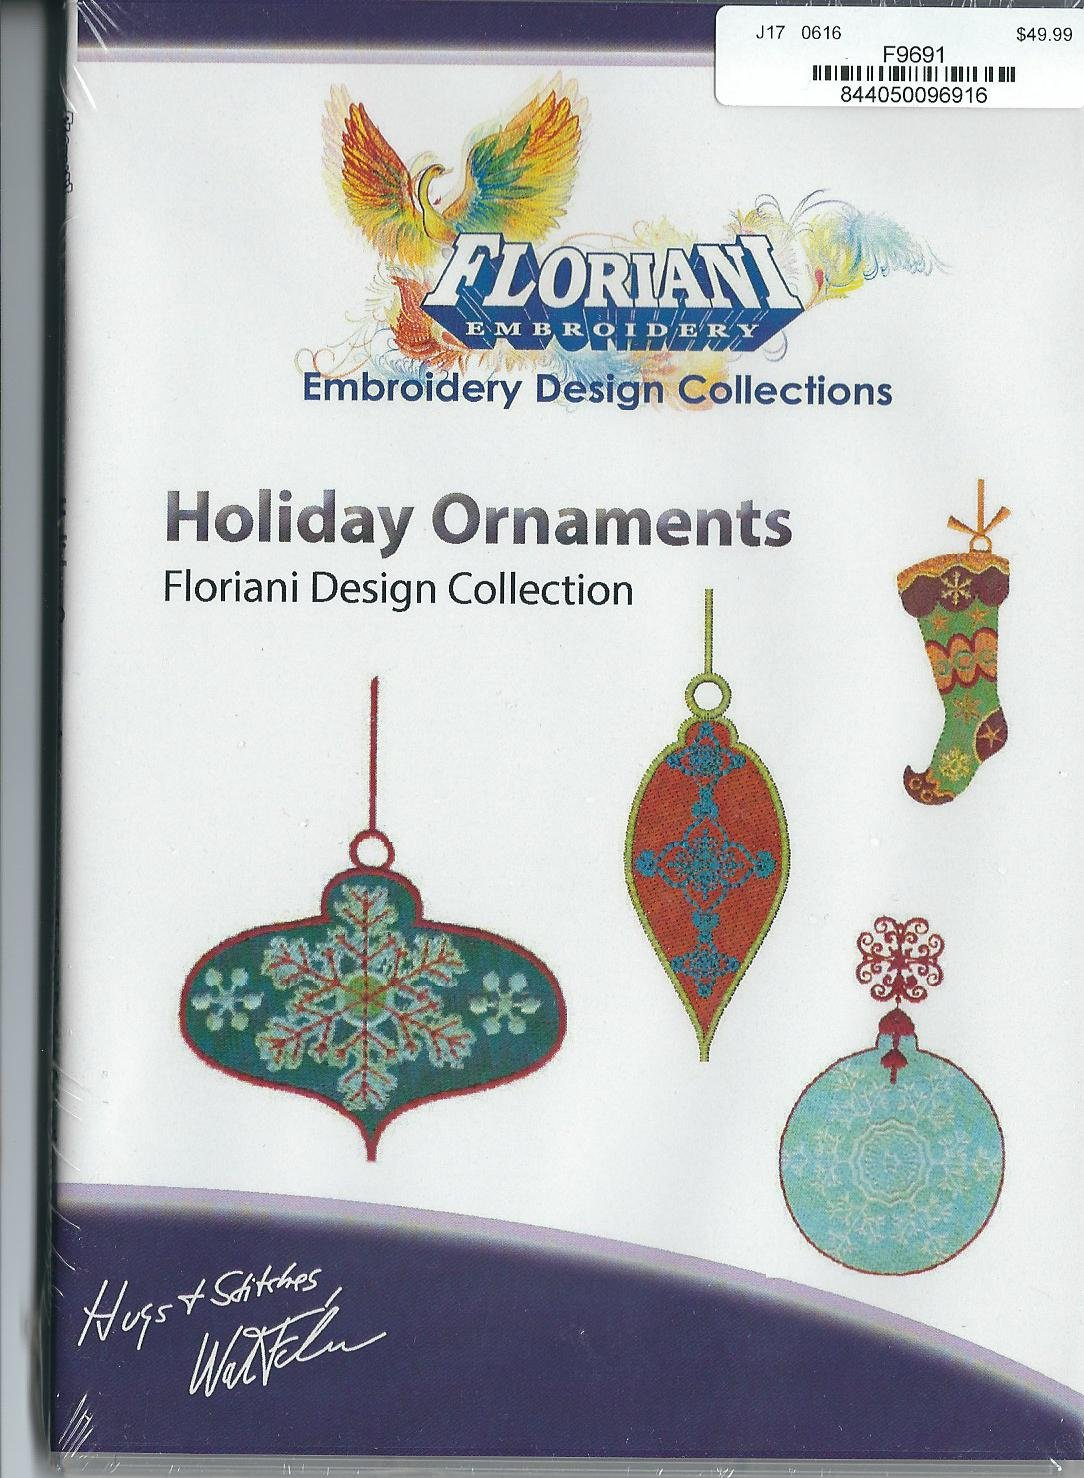 Floriani Embroidery Design Collection Holiday Ornaments